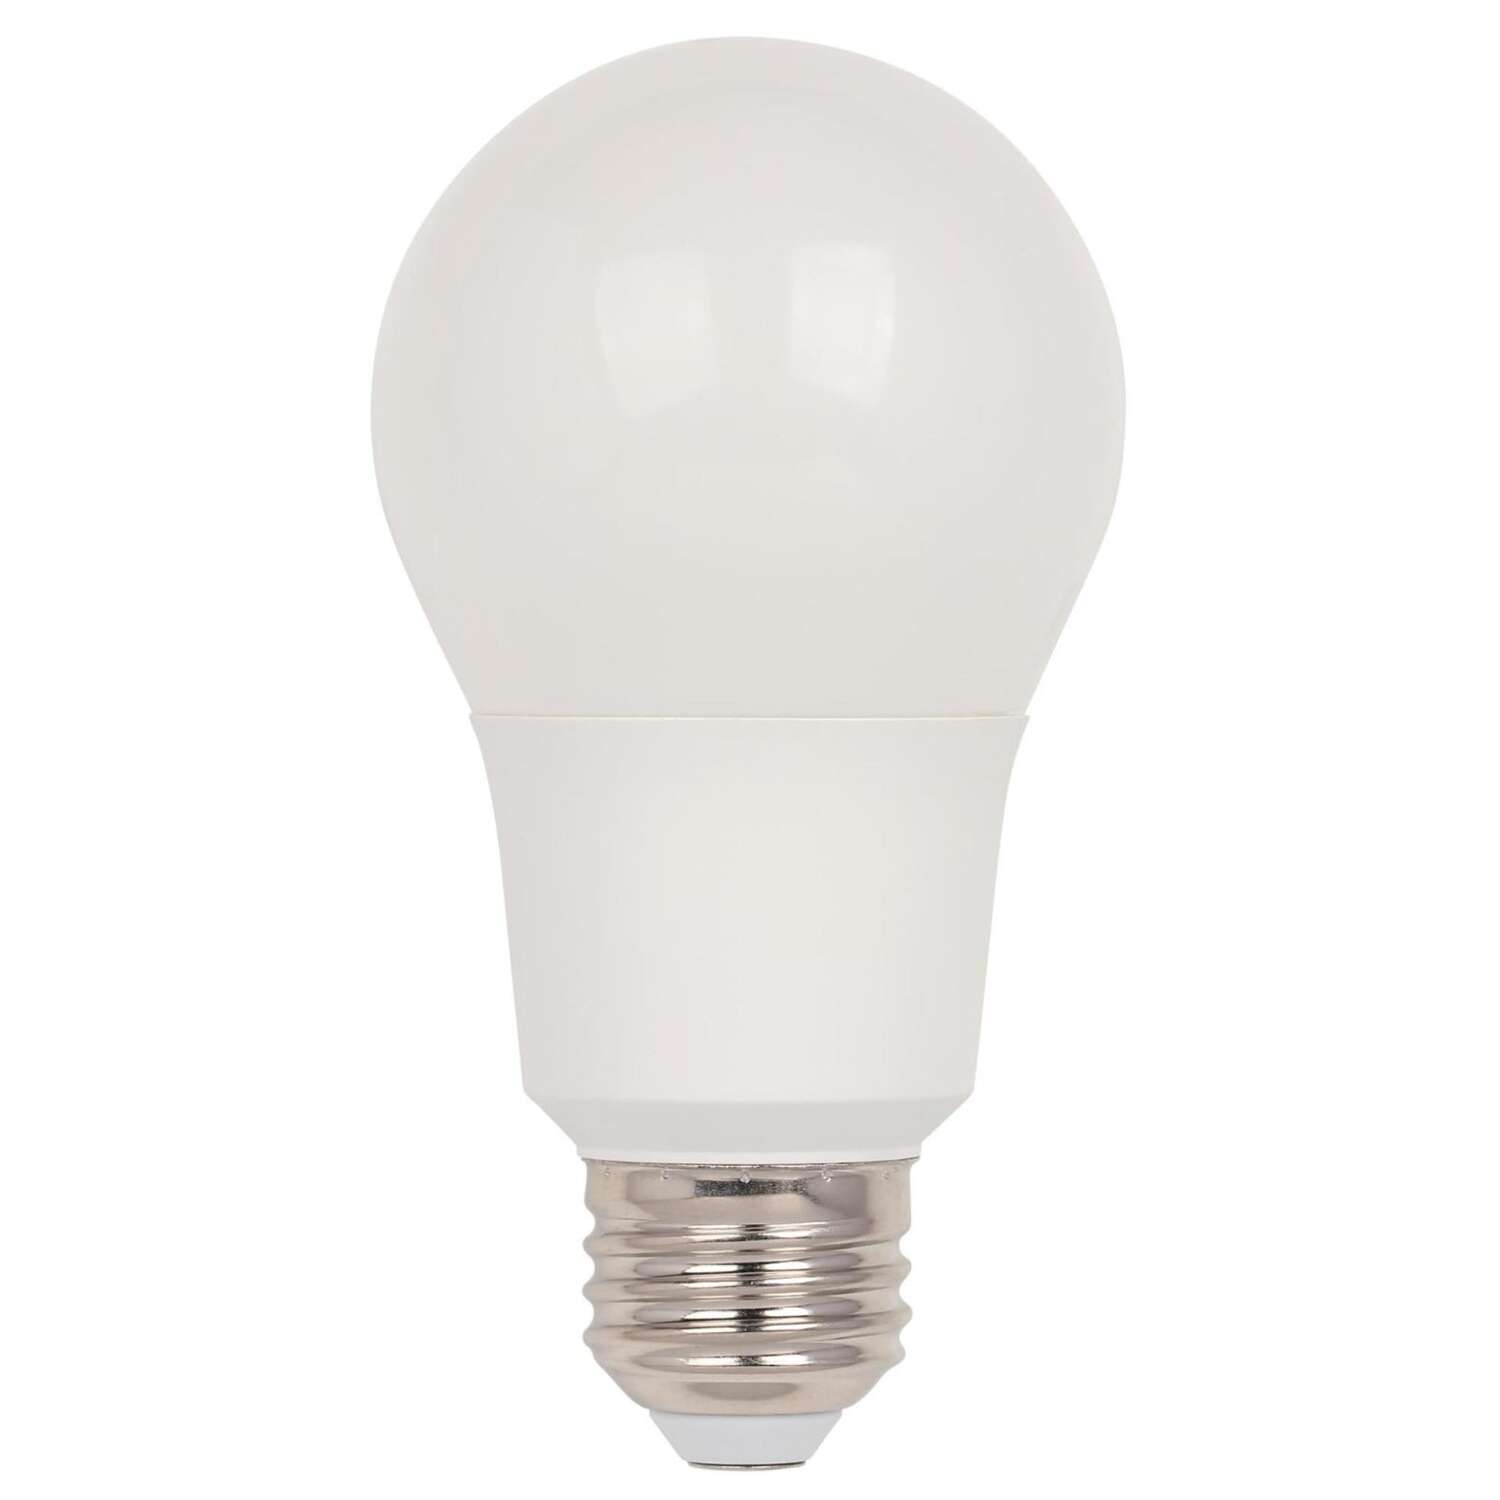 Westinghouse  A19  E26 (Medium)  LED Bulb  Daylight  75 Watt Equivalence 1 pk